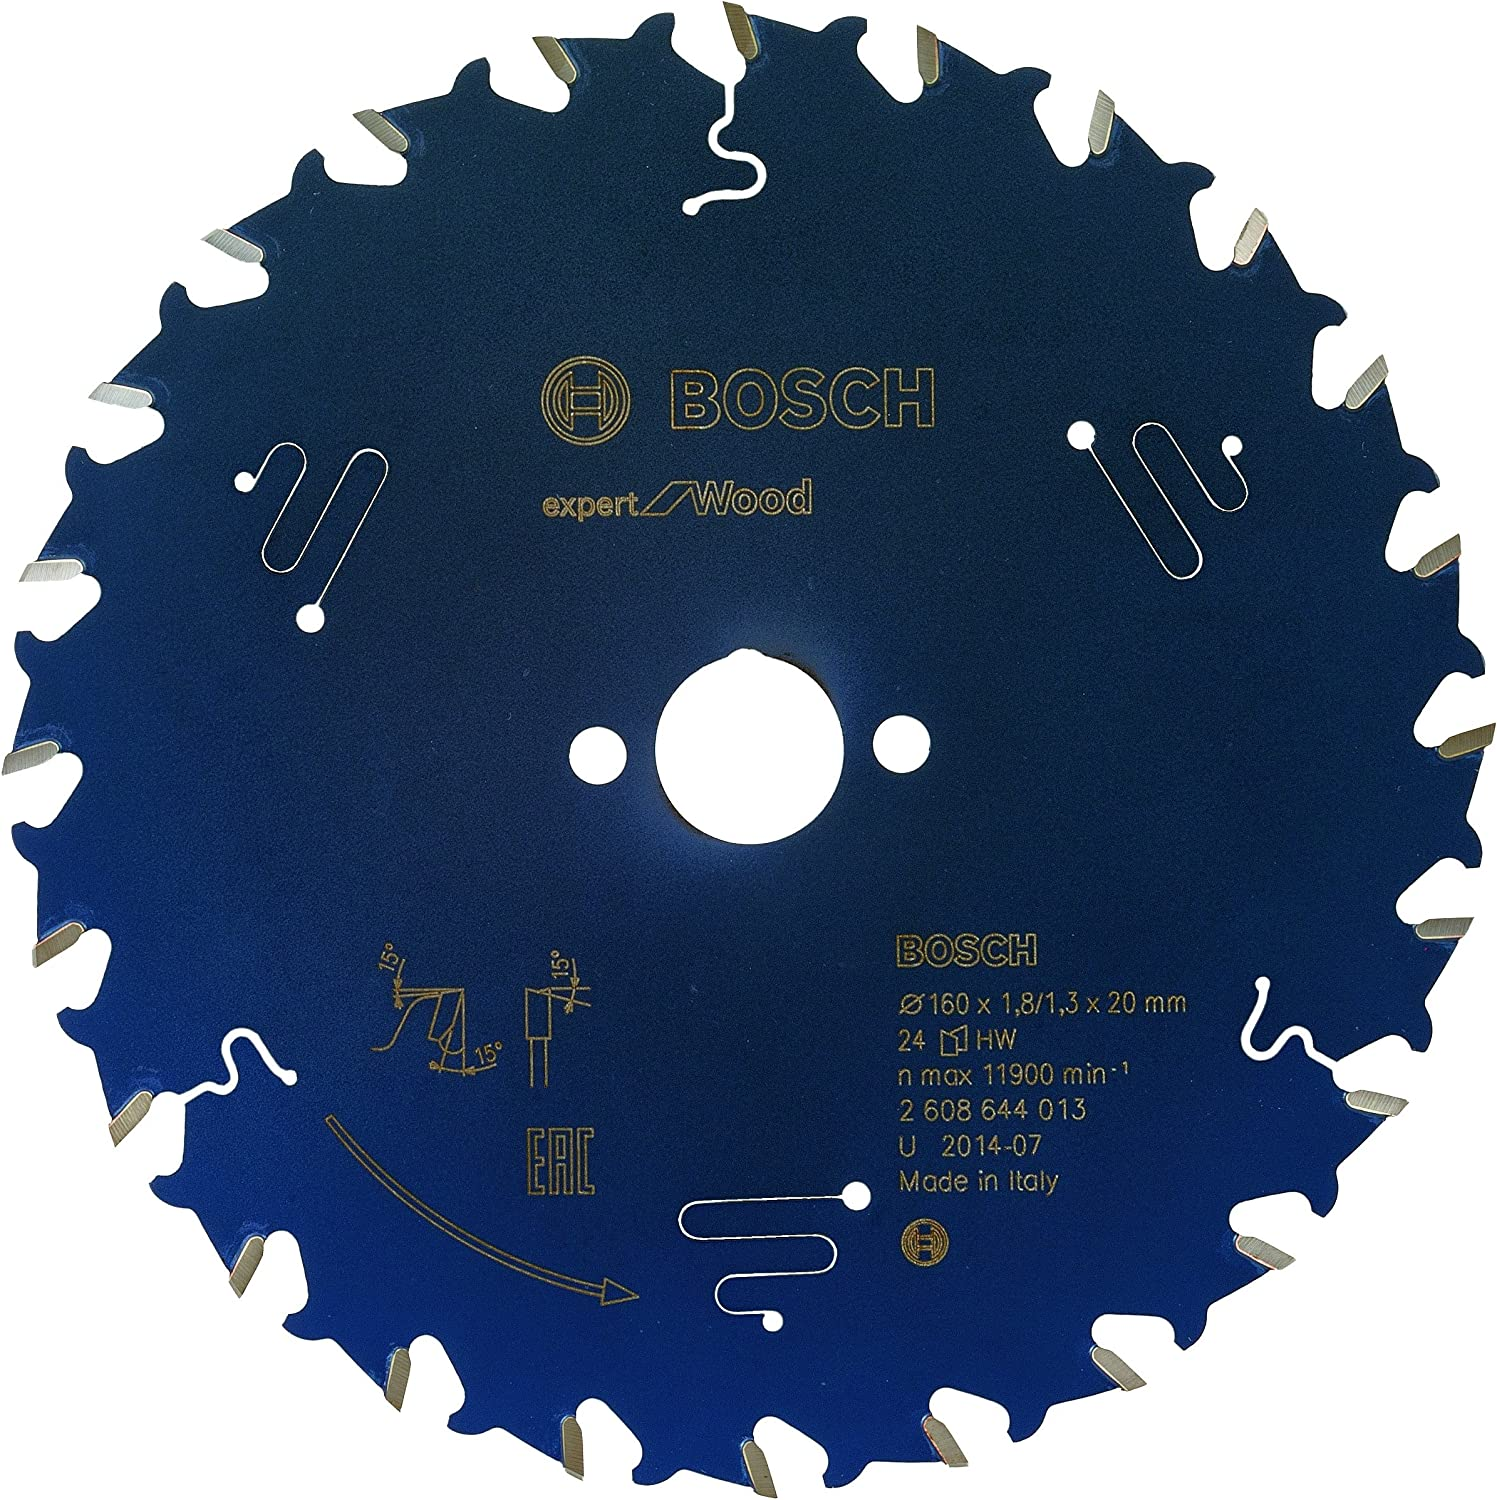 Bosch 2329790 Circular Blade Blue Saw Reservation 2021 spring and summer new